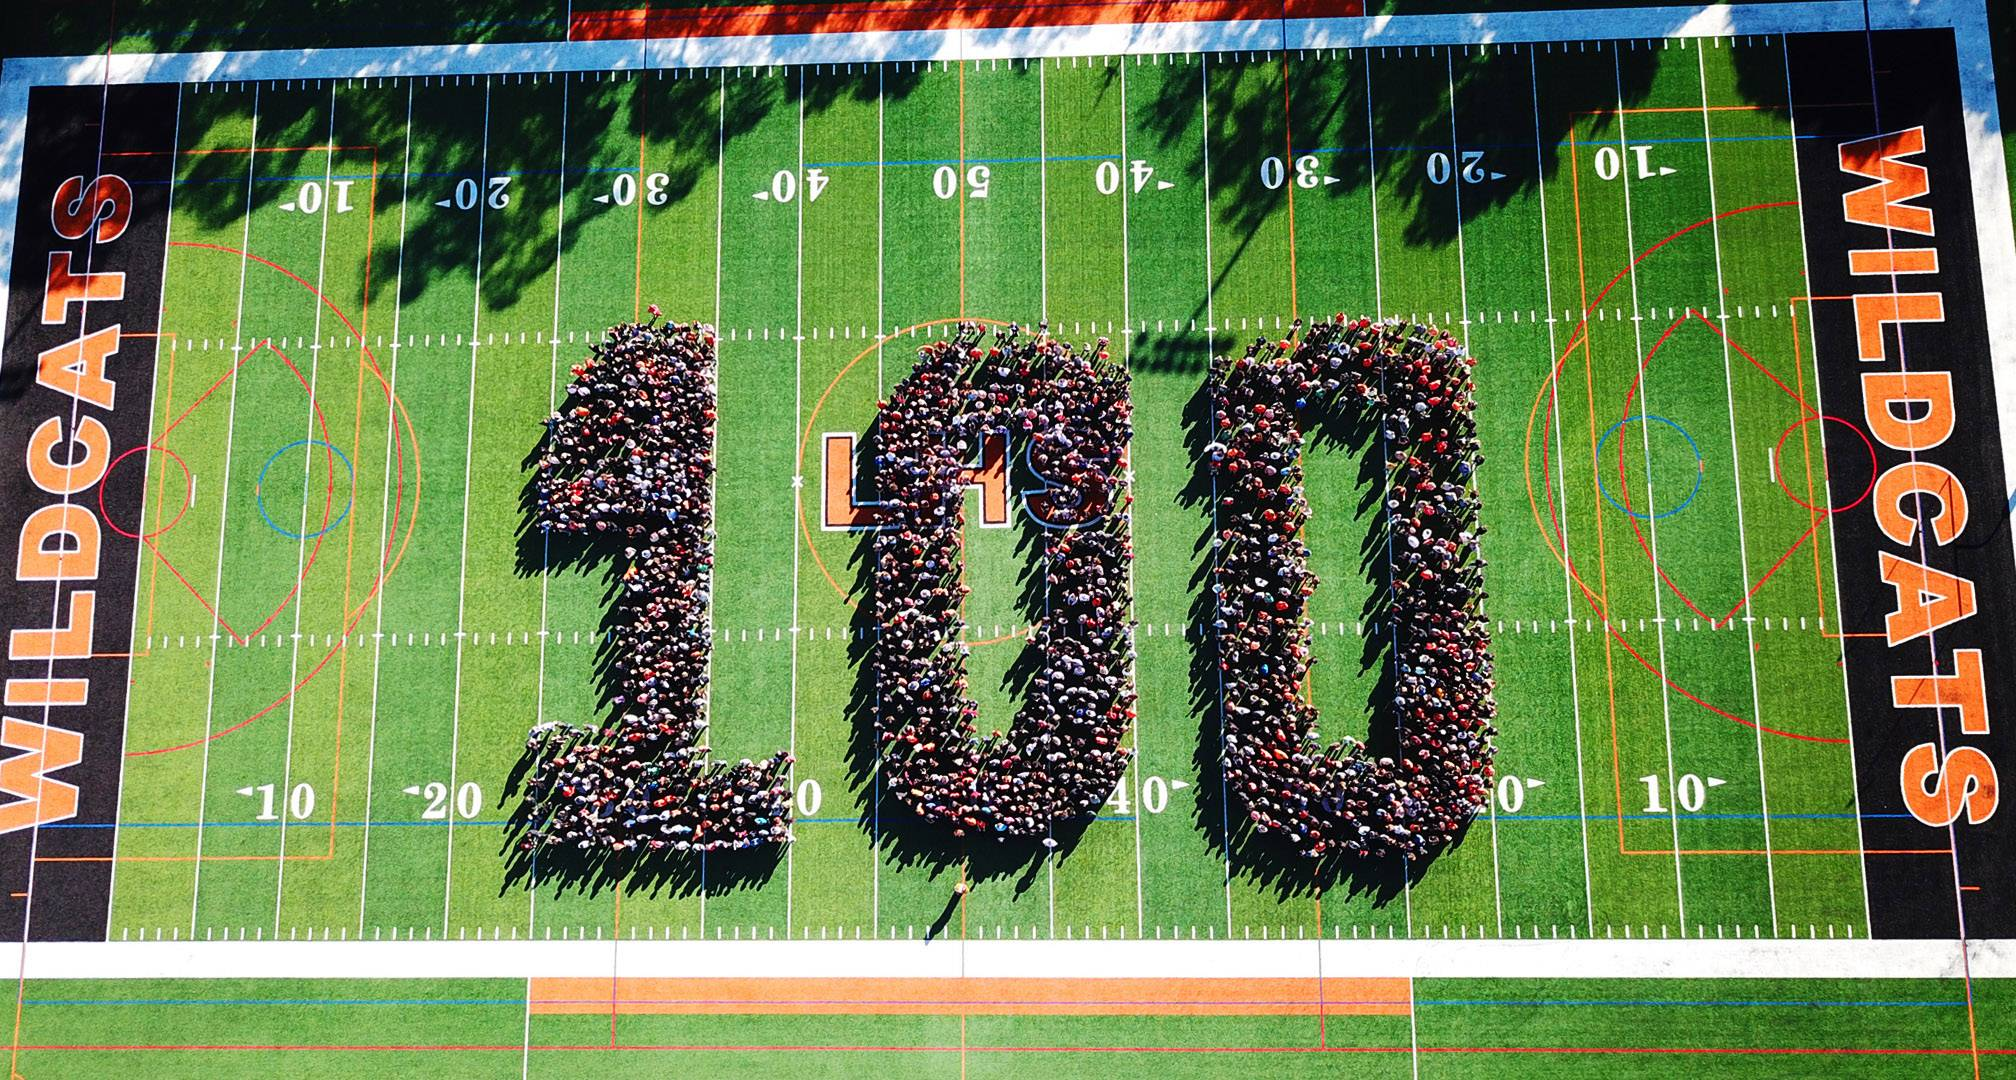 Libertyville High centennial celebration culminates next week